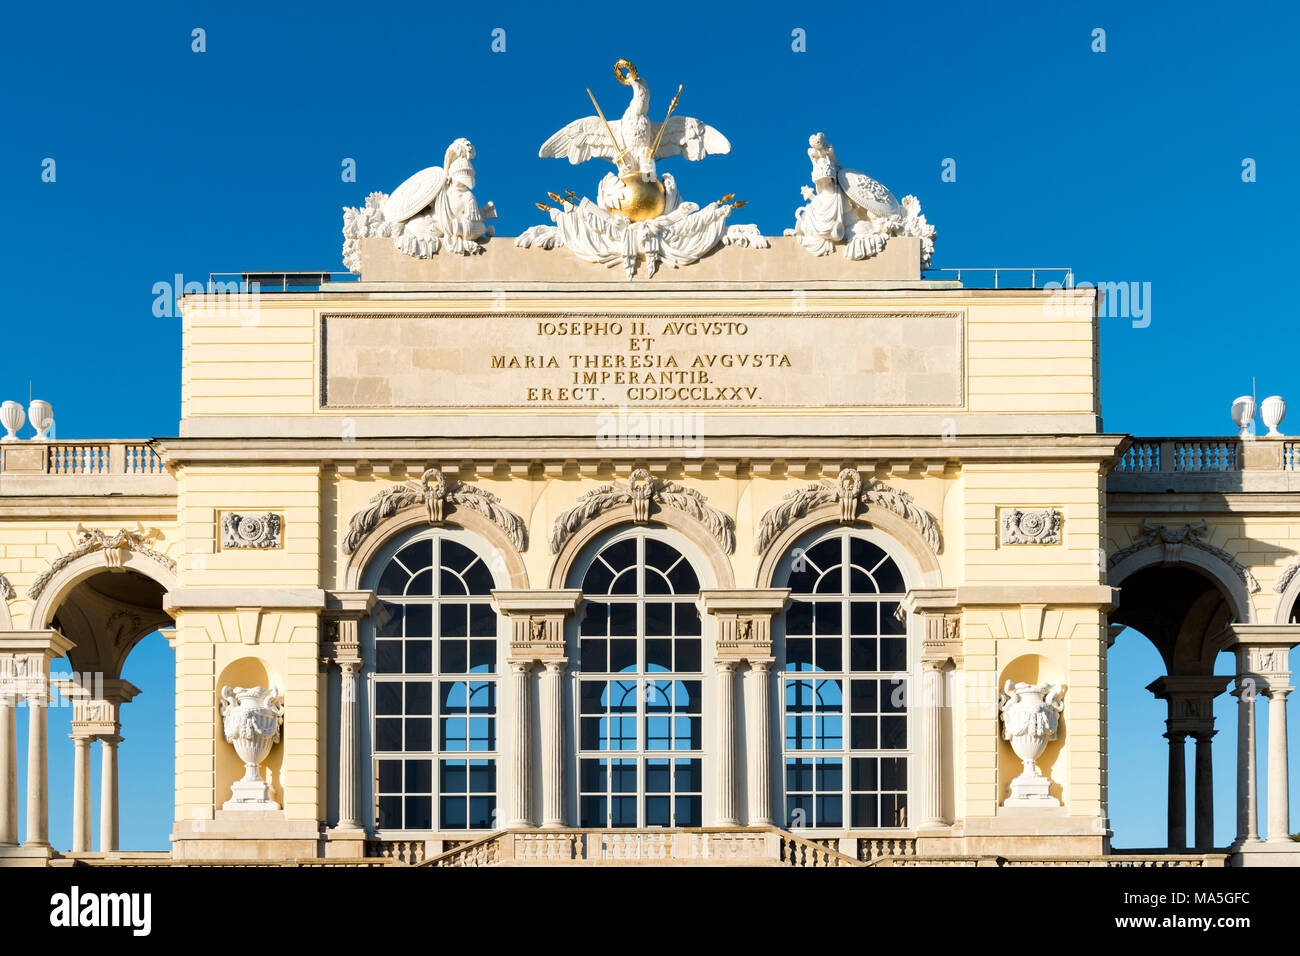 Vienna, Austria, Europe. The Gloriette in the gardens of Schönbrunn Palace - Stock Image